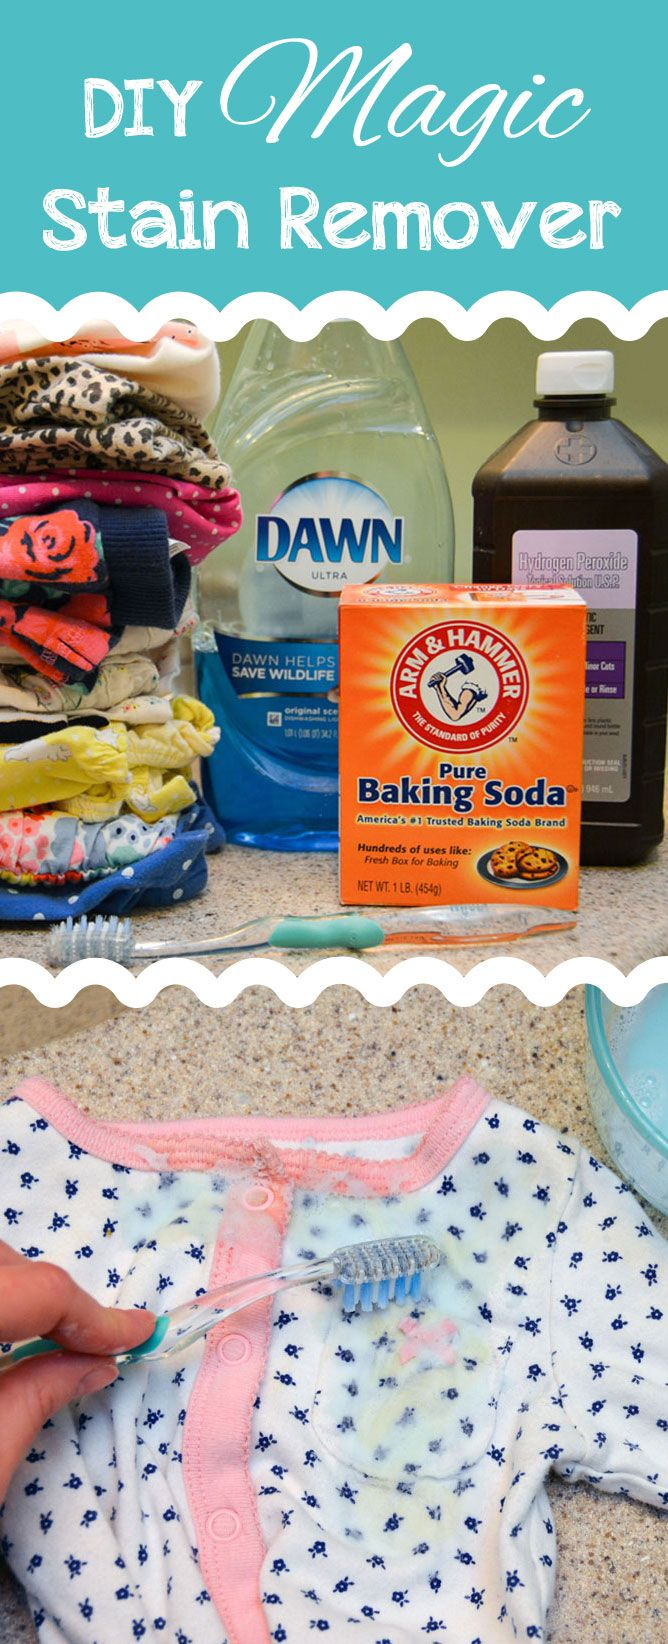 Diy Magic Stain Remover For Baby Clothes Homemade Stain Removers